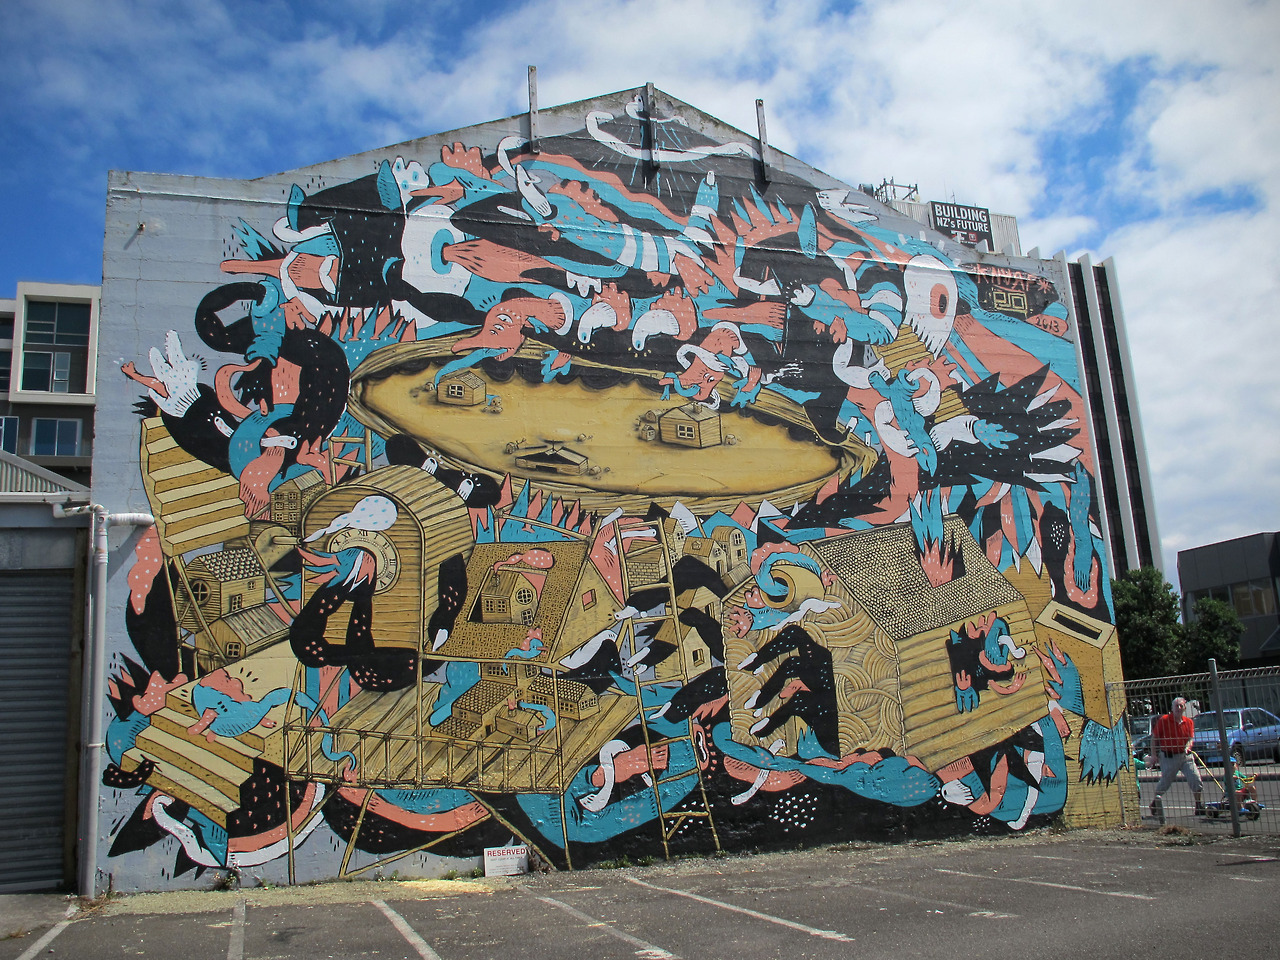 Knarf x eno new murals in new plymouth new zealand for Australian mural